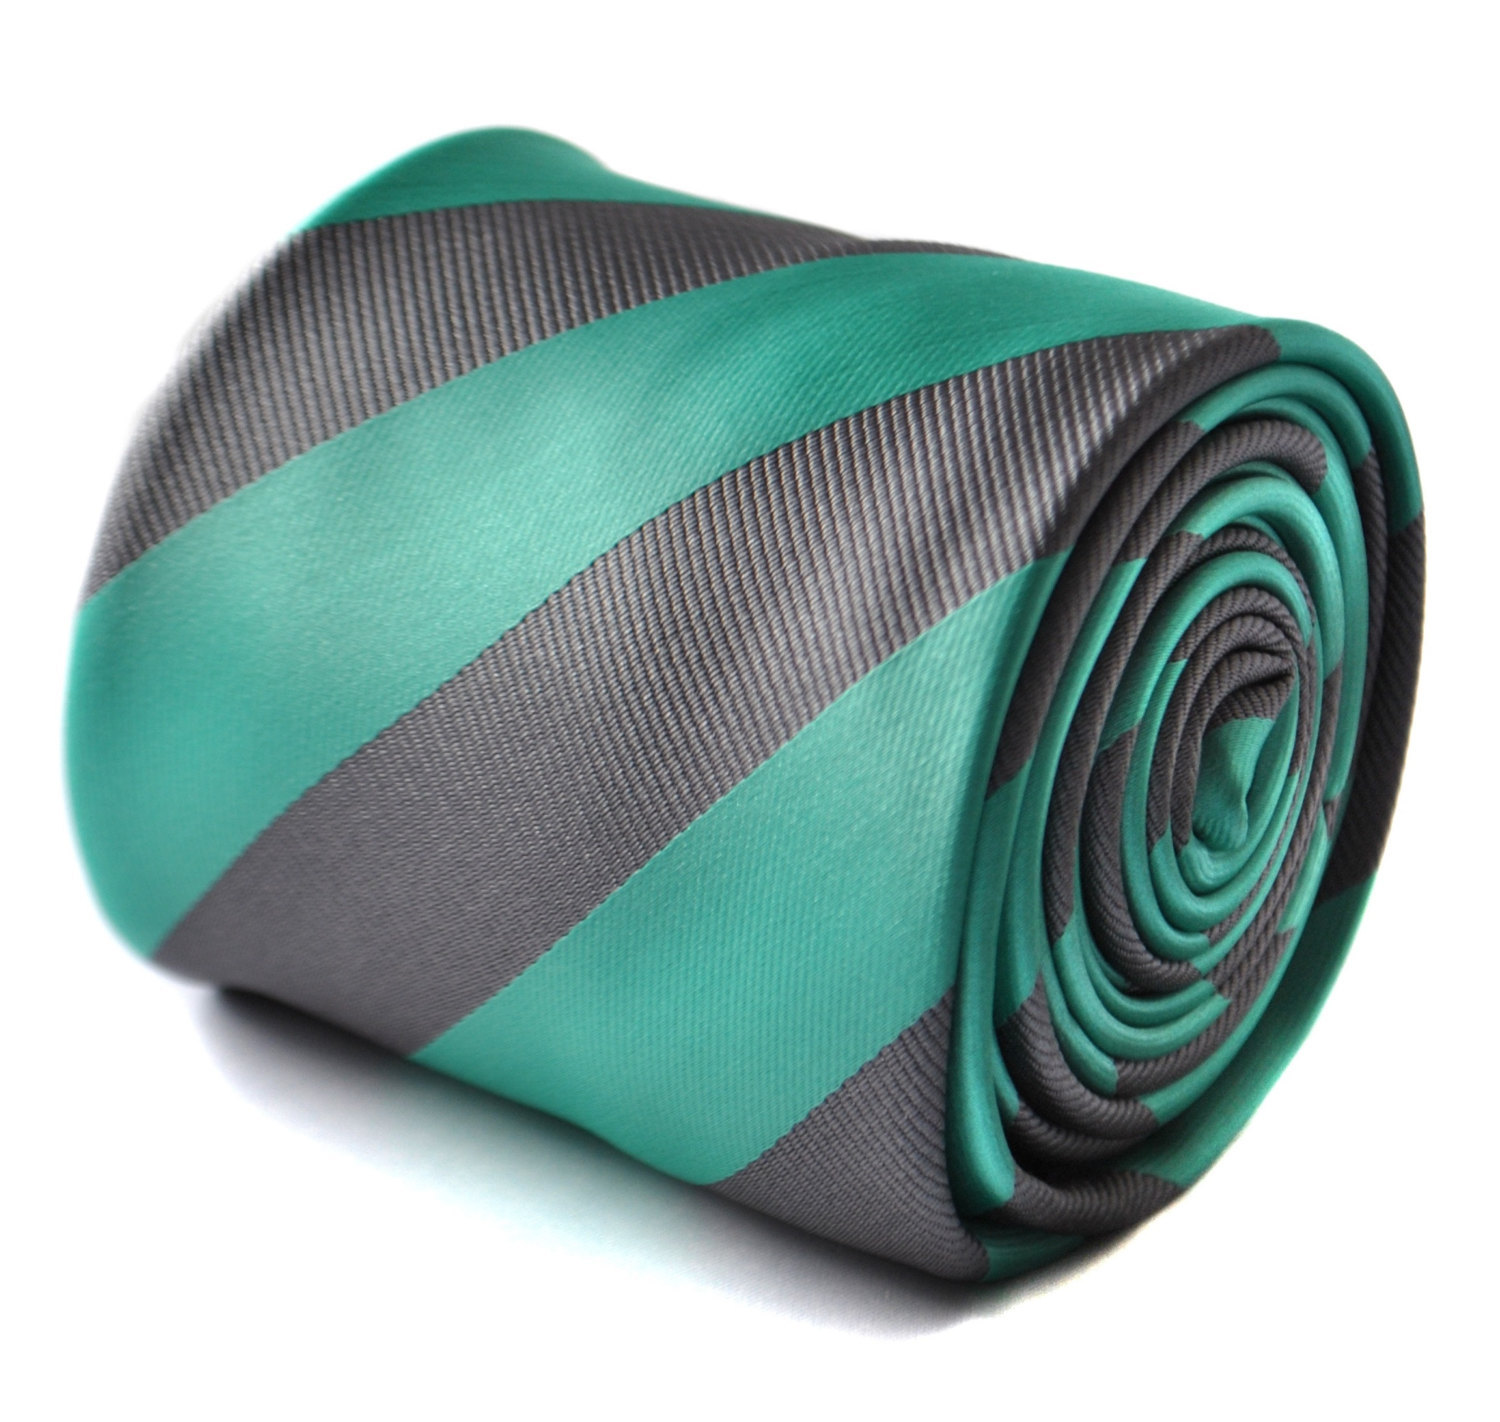 Sea green and silver grey barber striped tie with signature floral design to the